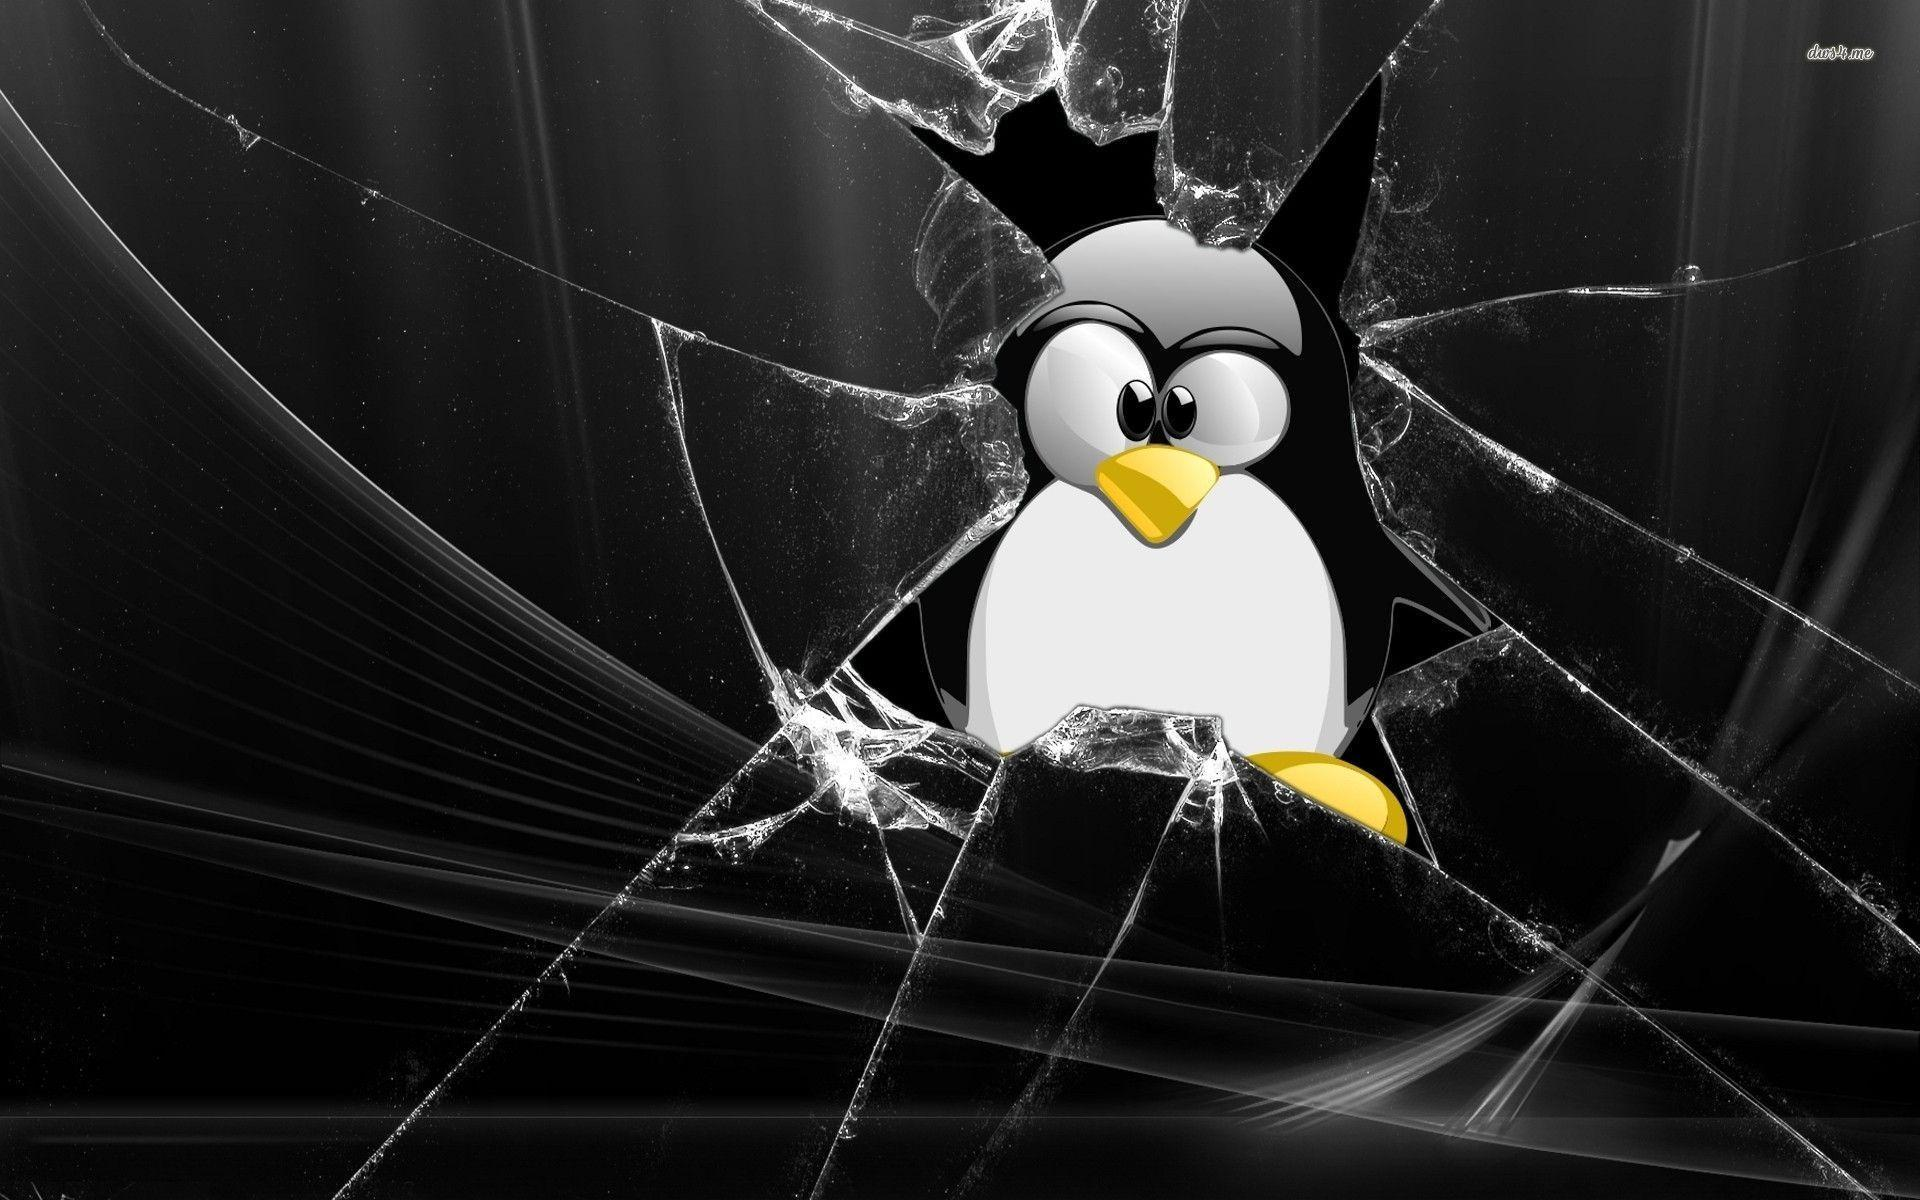 Tux through broken window wallpaper - Computer wallpapers - #